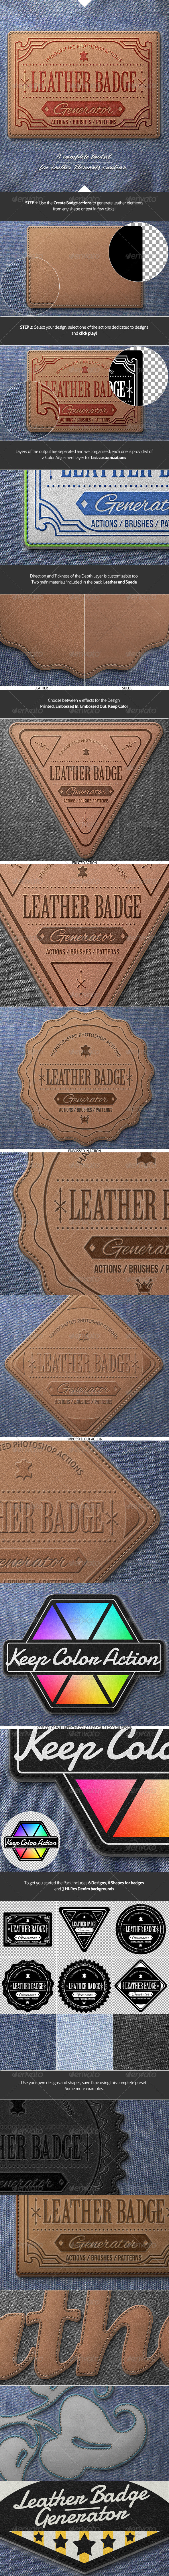 GraphicRiver Leather Badge Generator Photoshop Actions 8376002